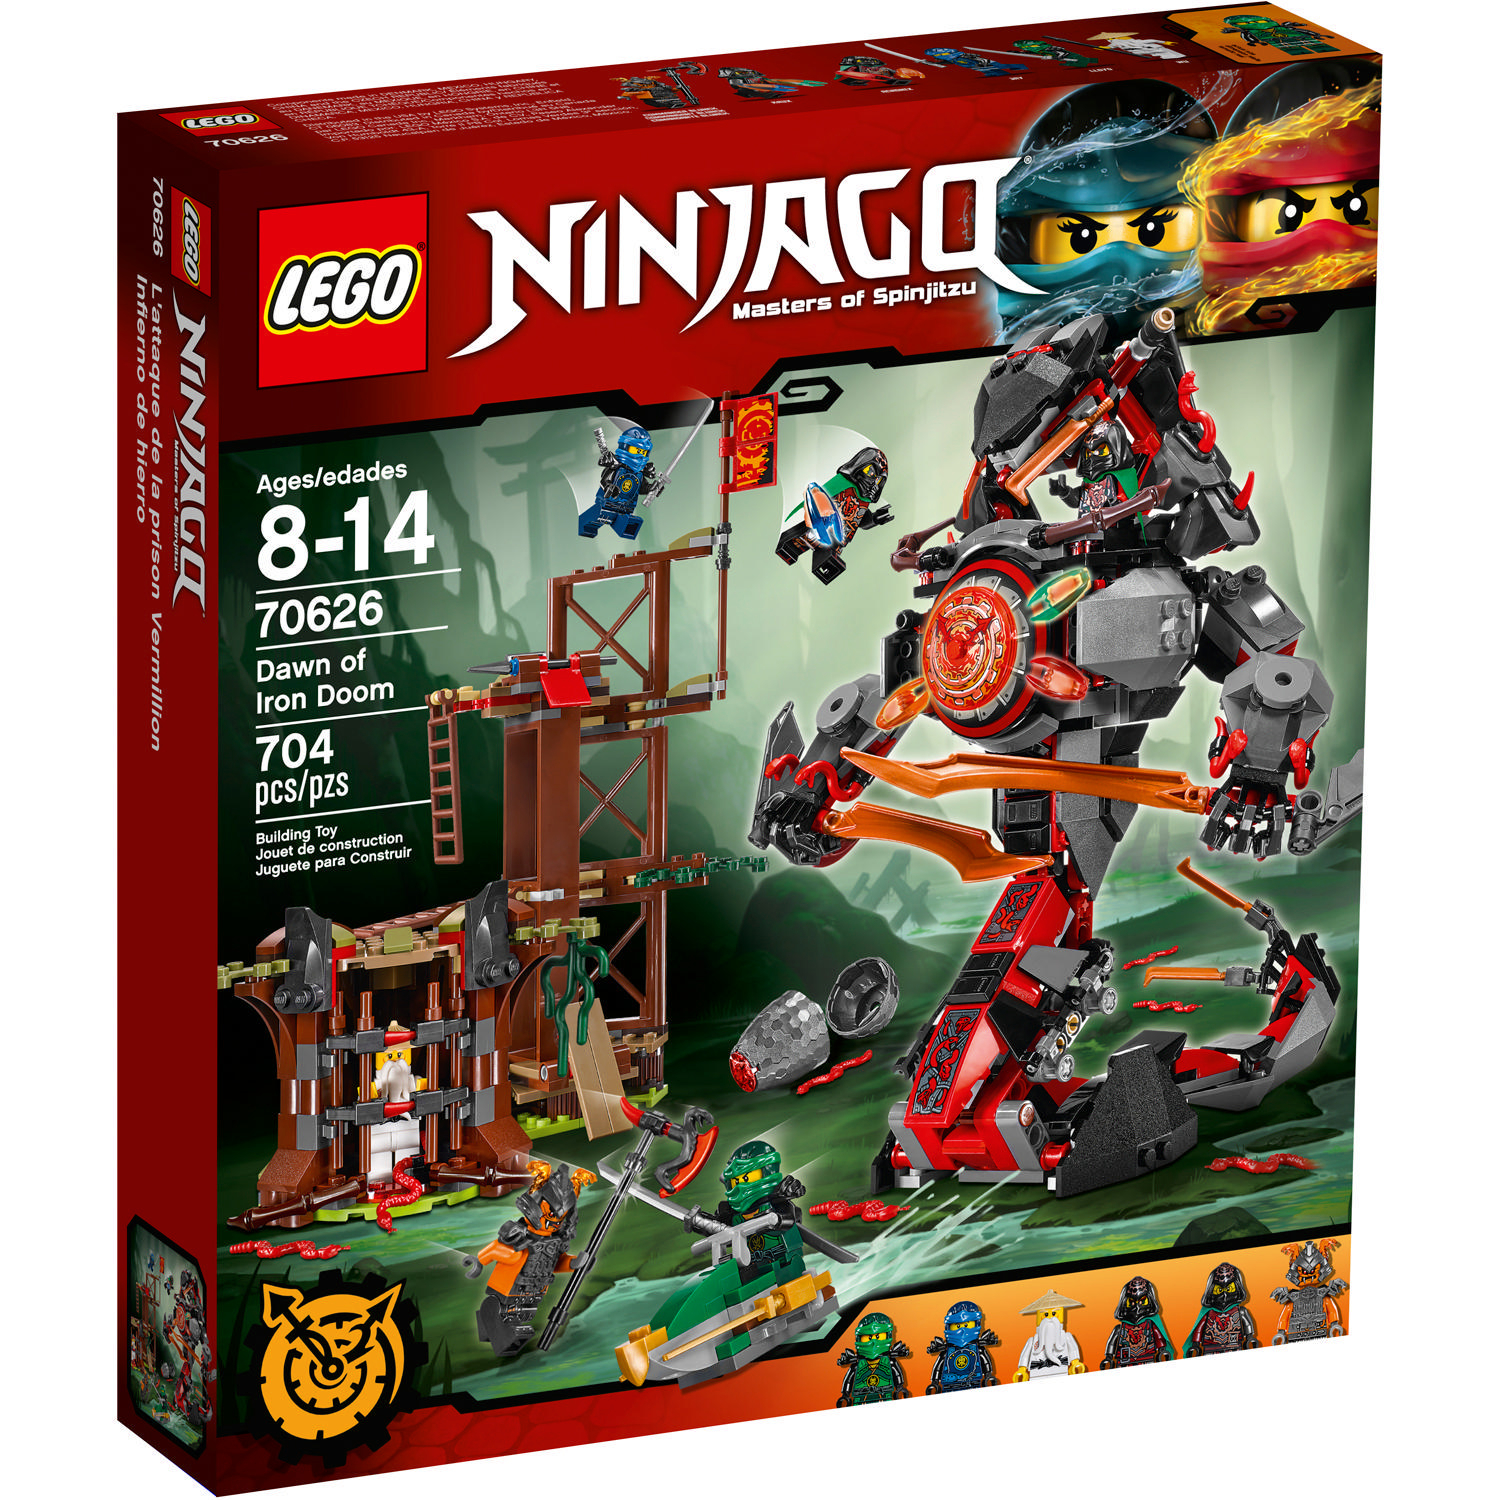 LEGO Ninjago: Hot toys for kids this holiday on sale at Target ...